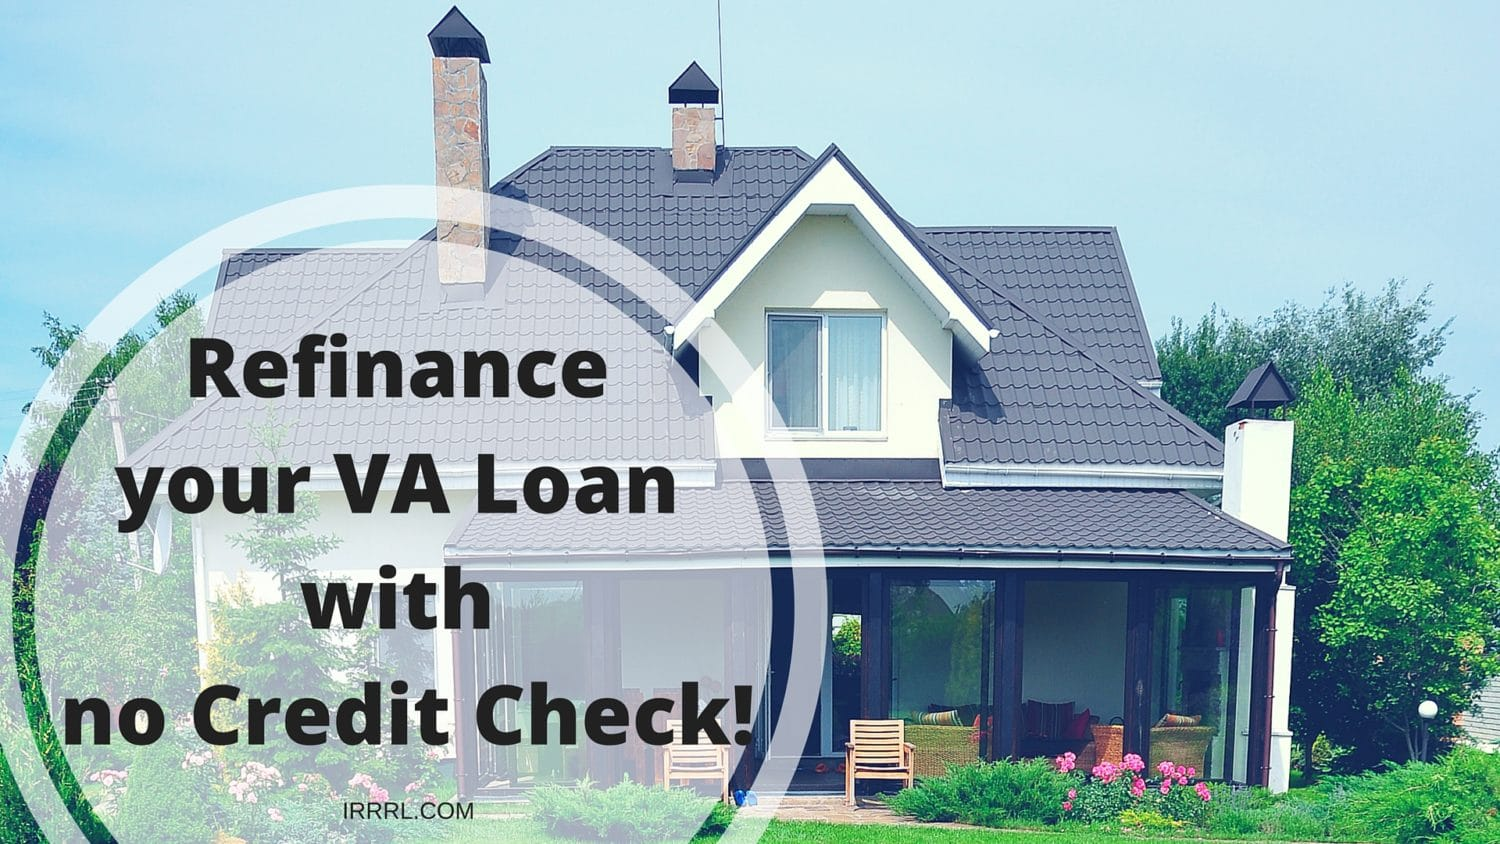 Refinance Your Va Loan With No Credit Check